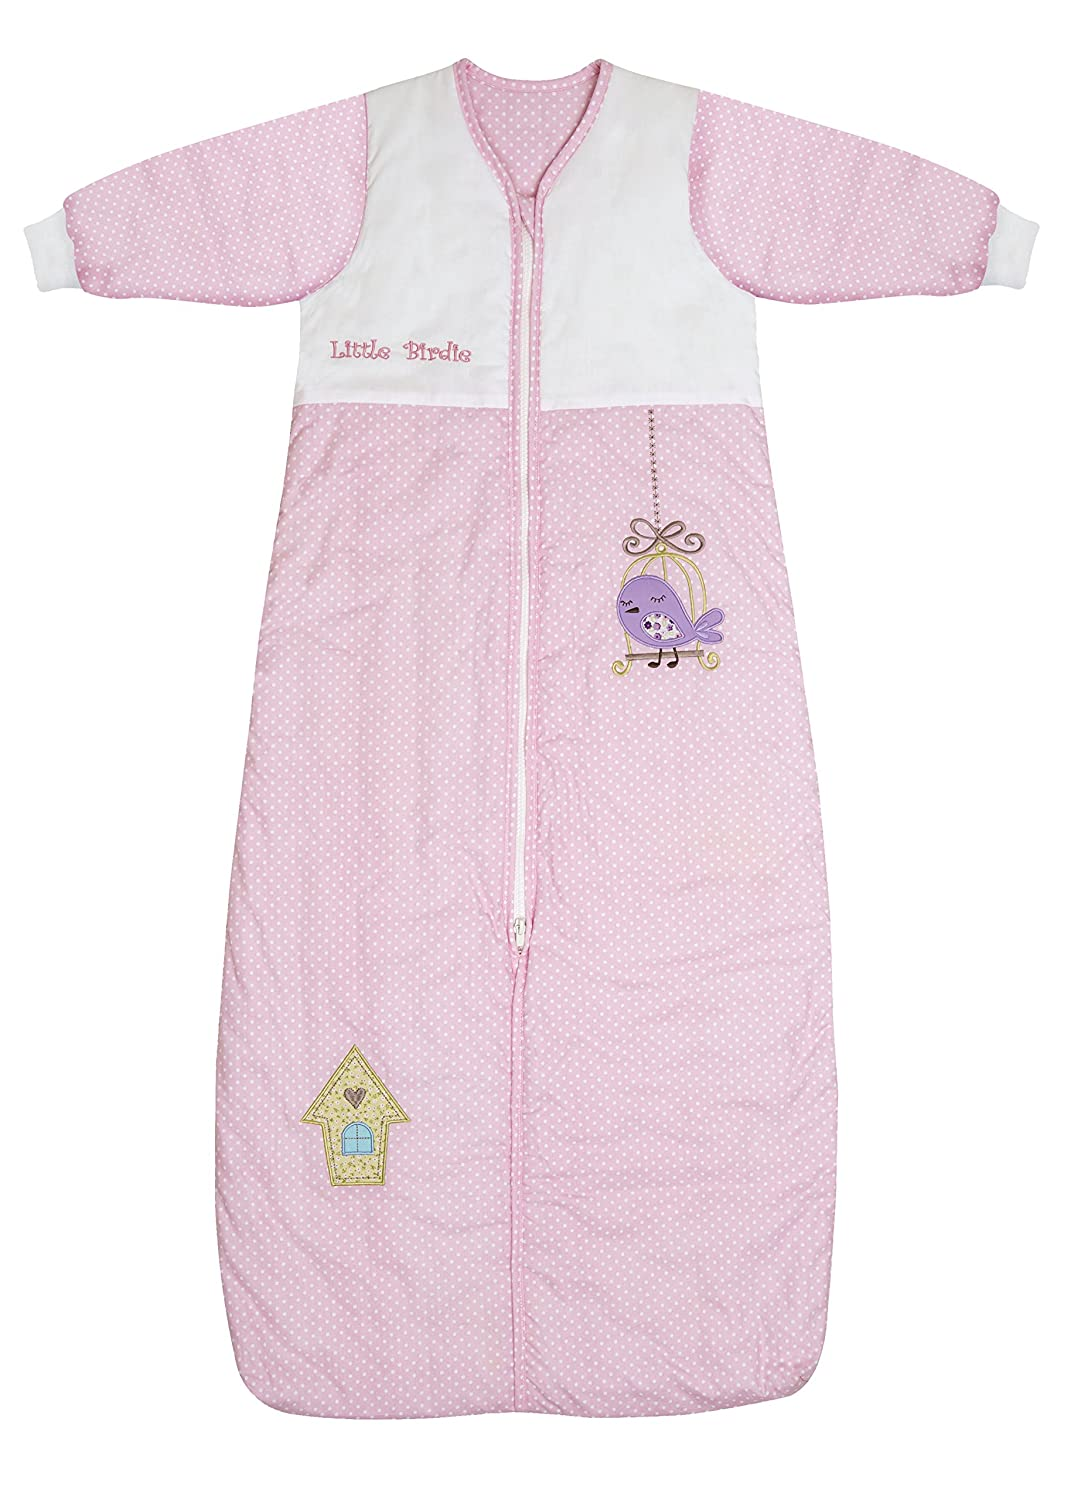 Slumbersac Baby Sleeping Bag Winter Weight approx 3.5 Tog - Pink Bird House, 12-36 months/110cm